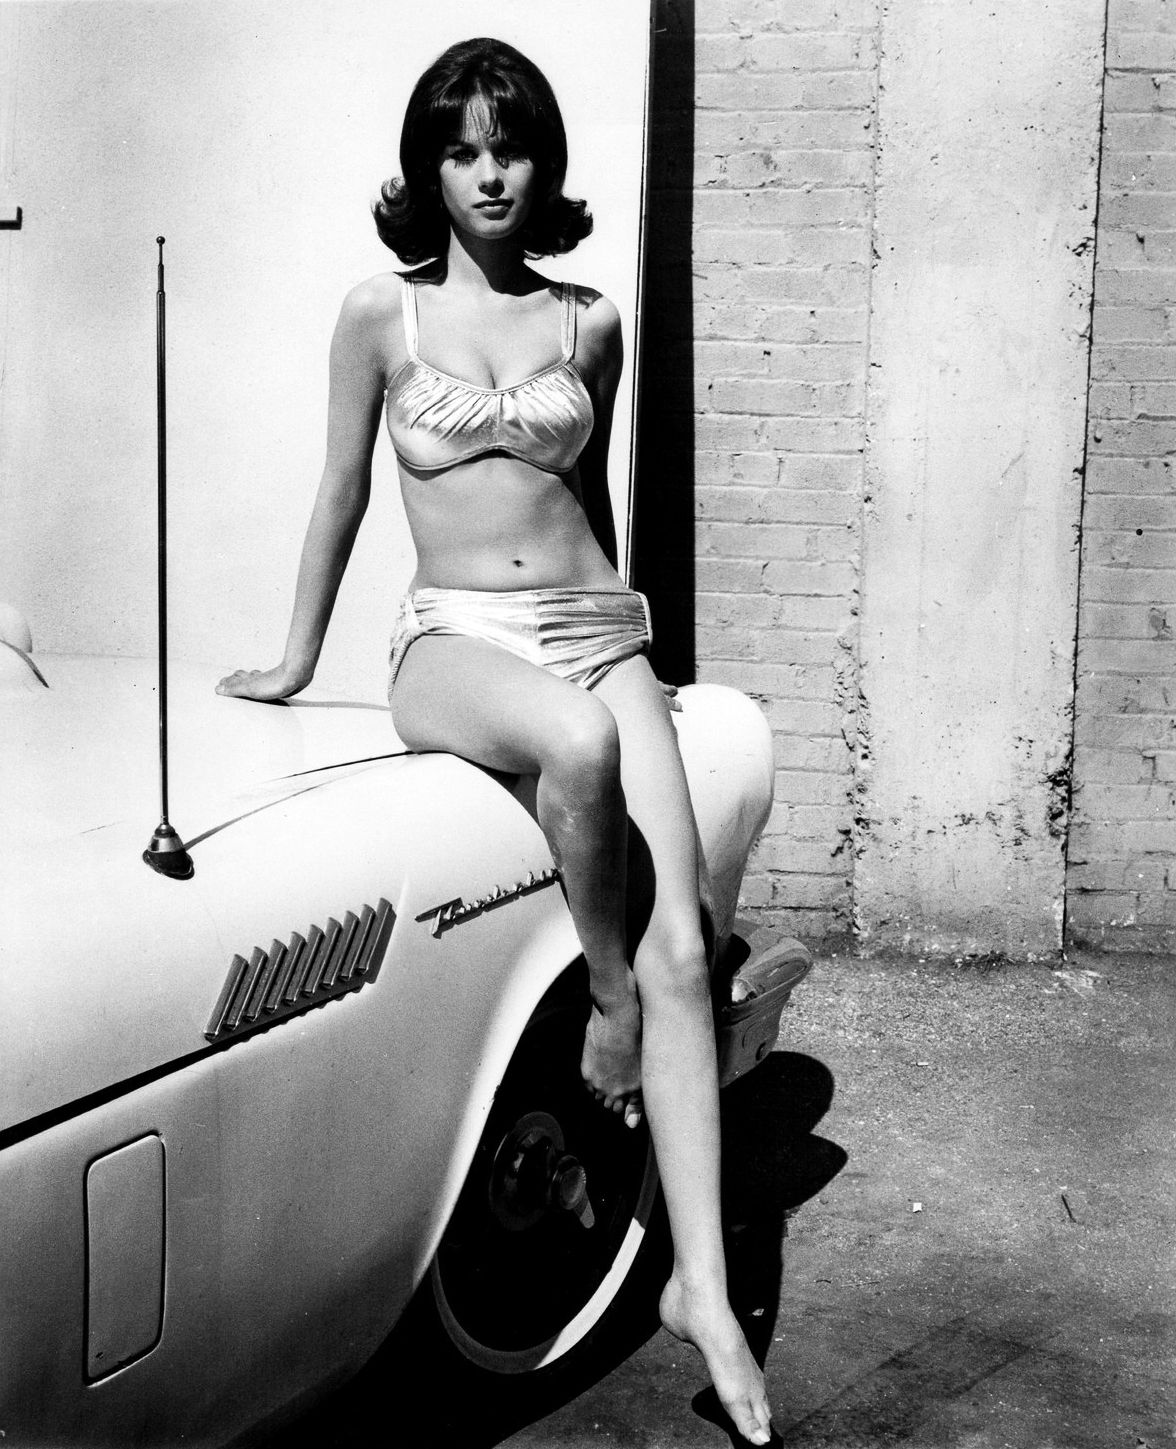 lana wood images